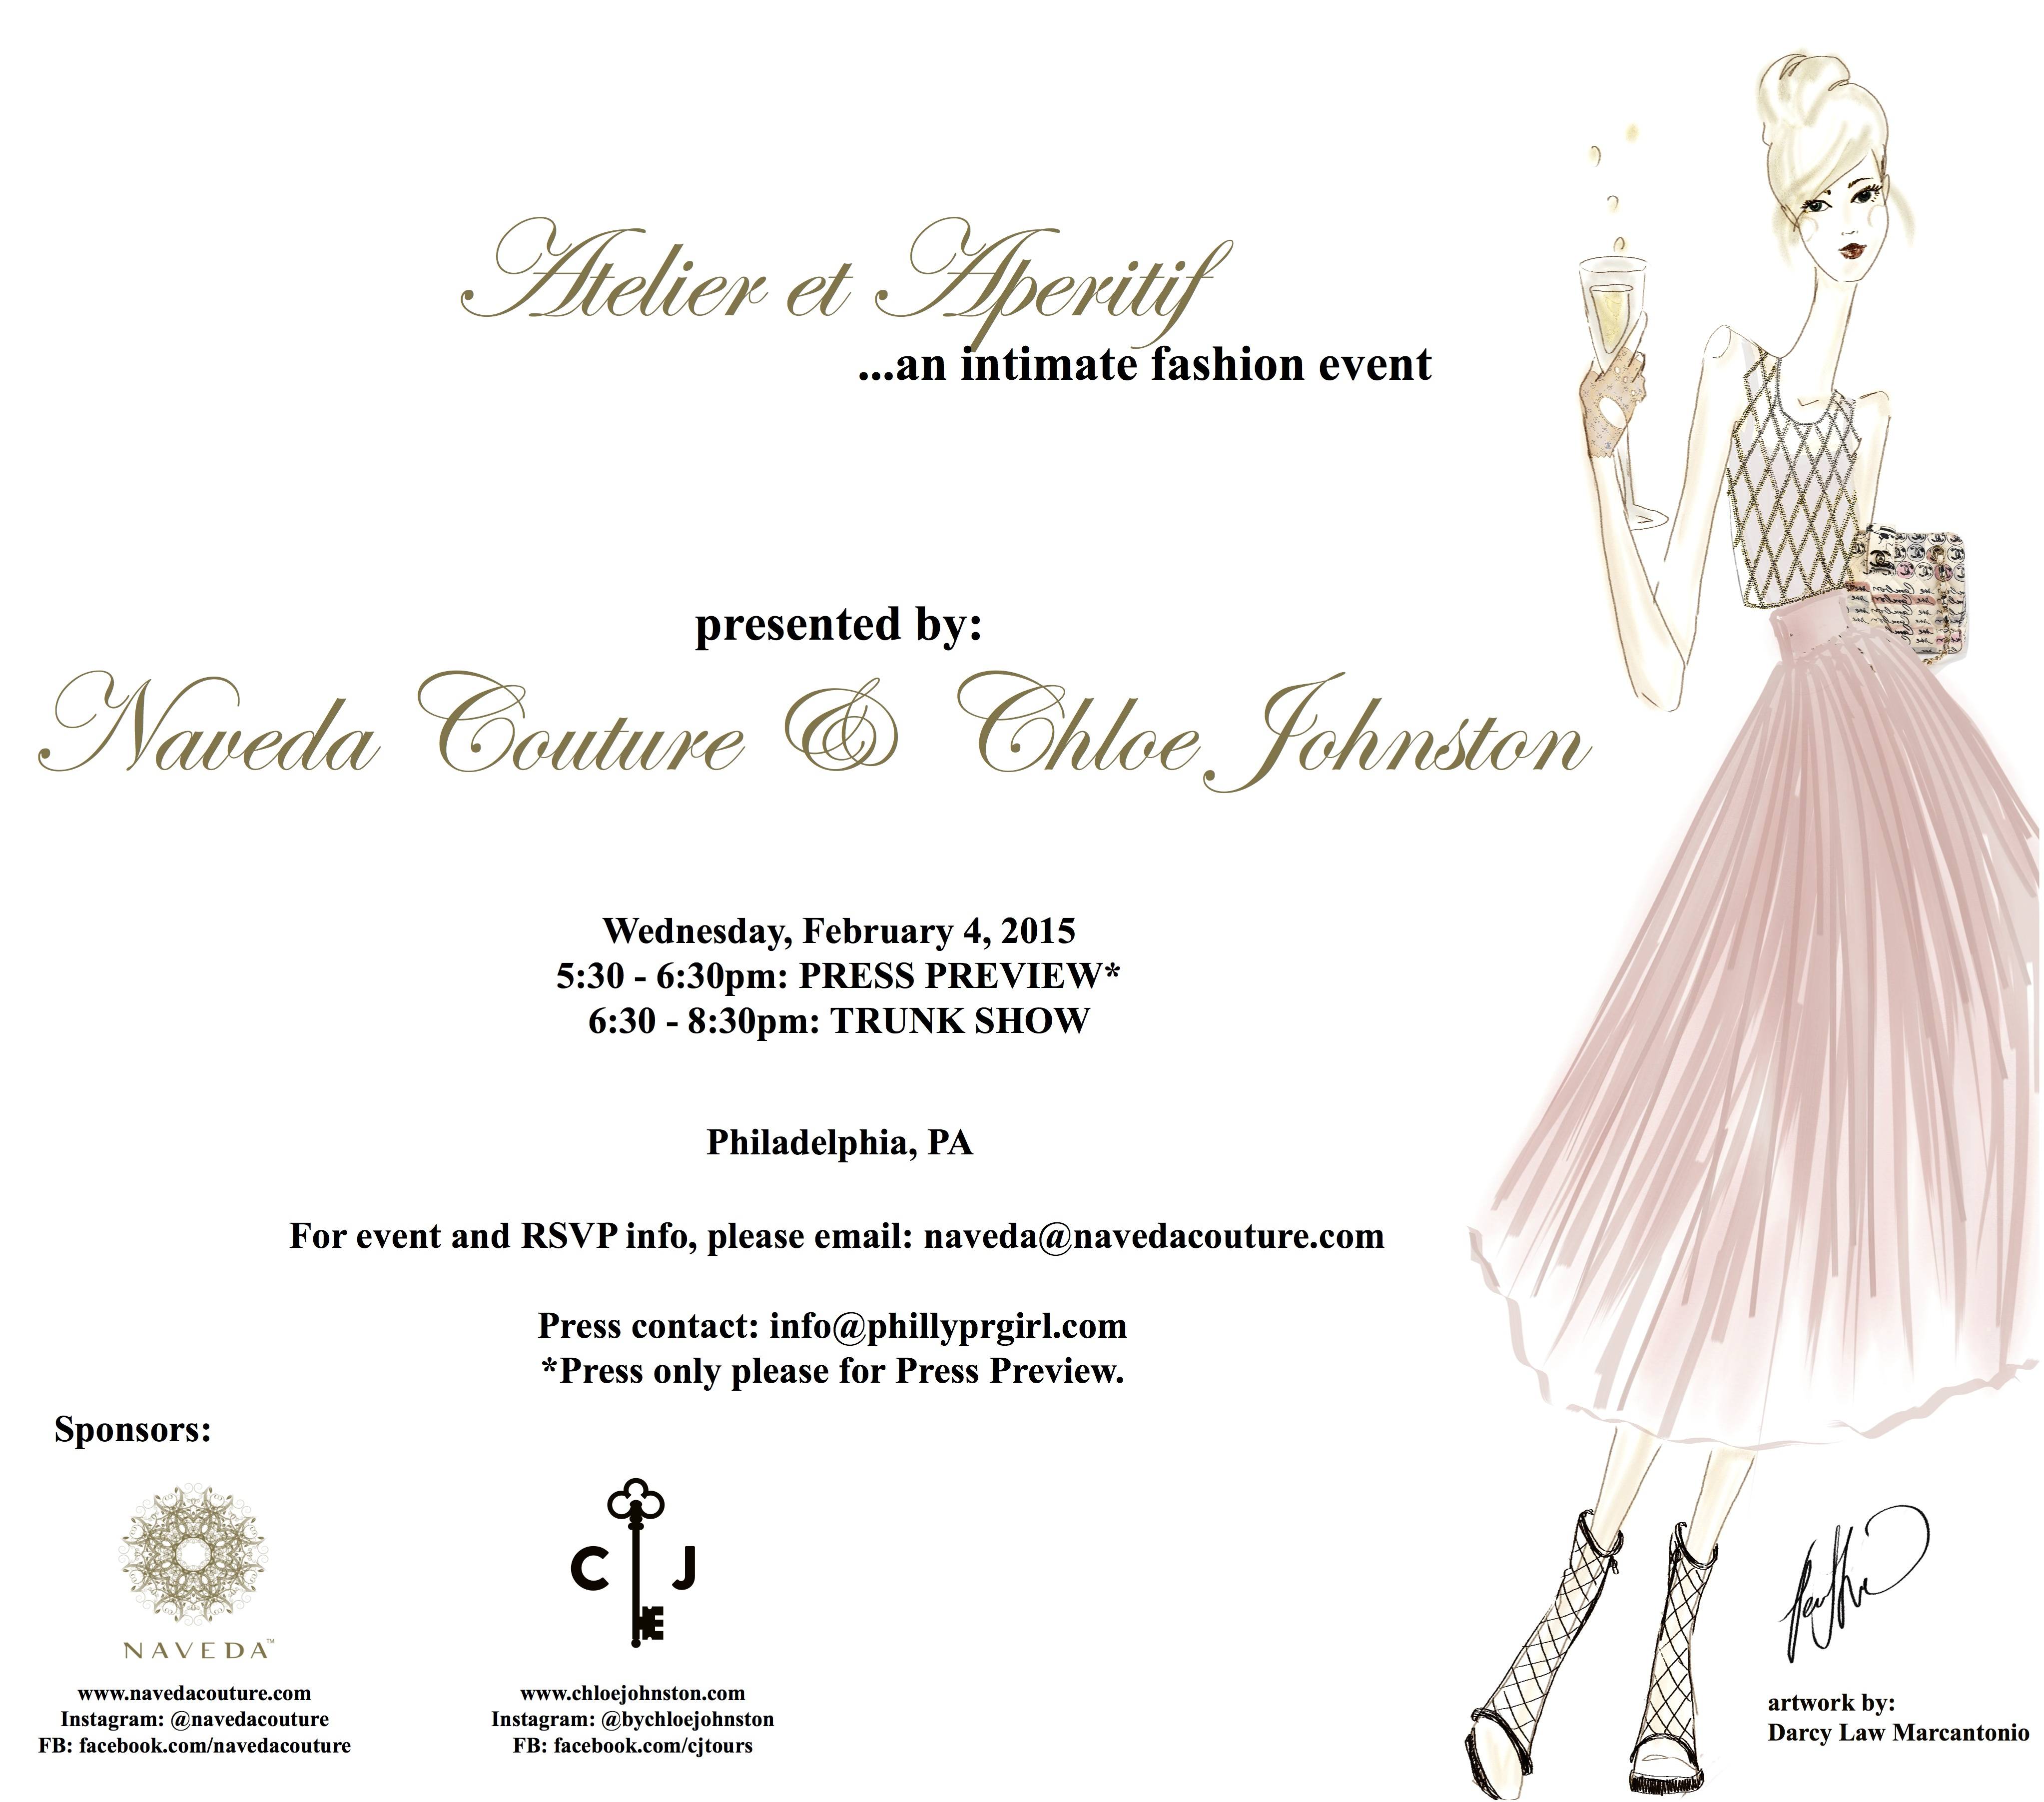 Naveda Couture Trunk Show Philly PR Girl